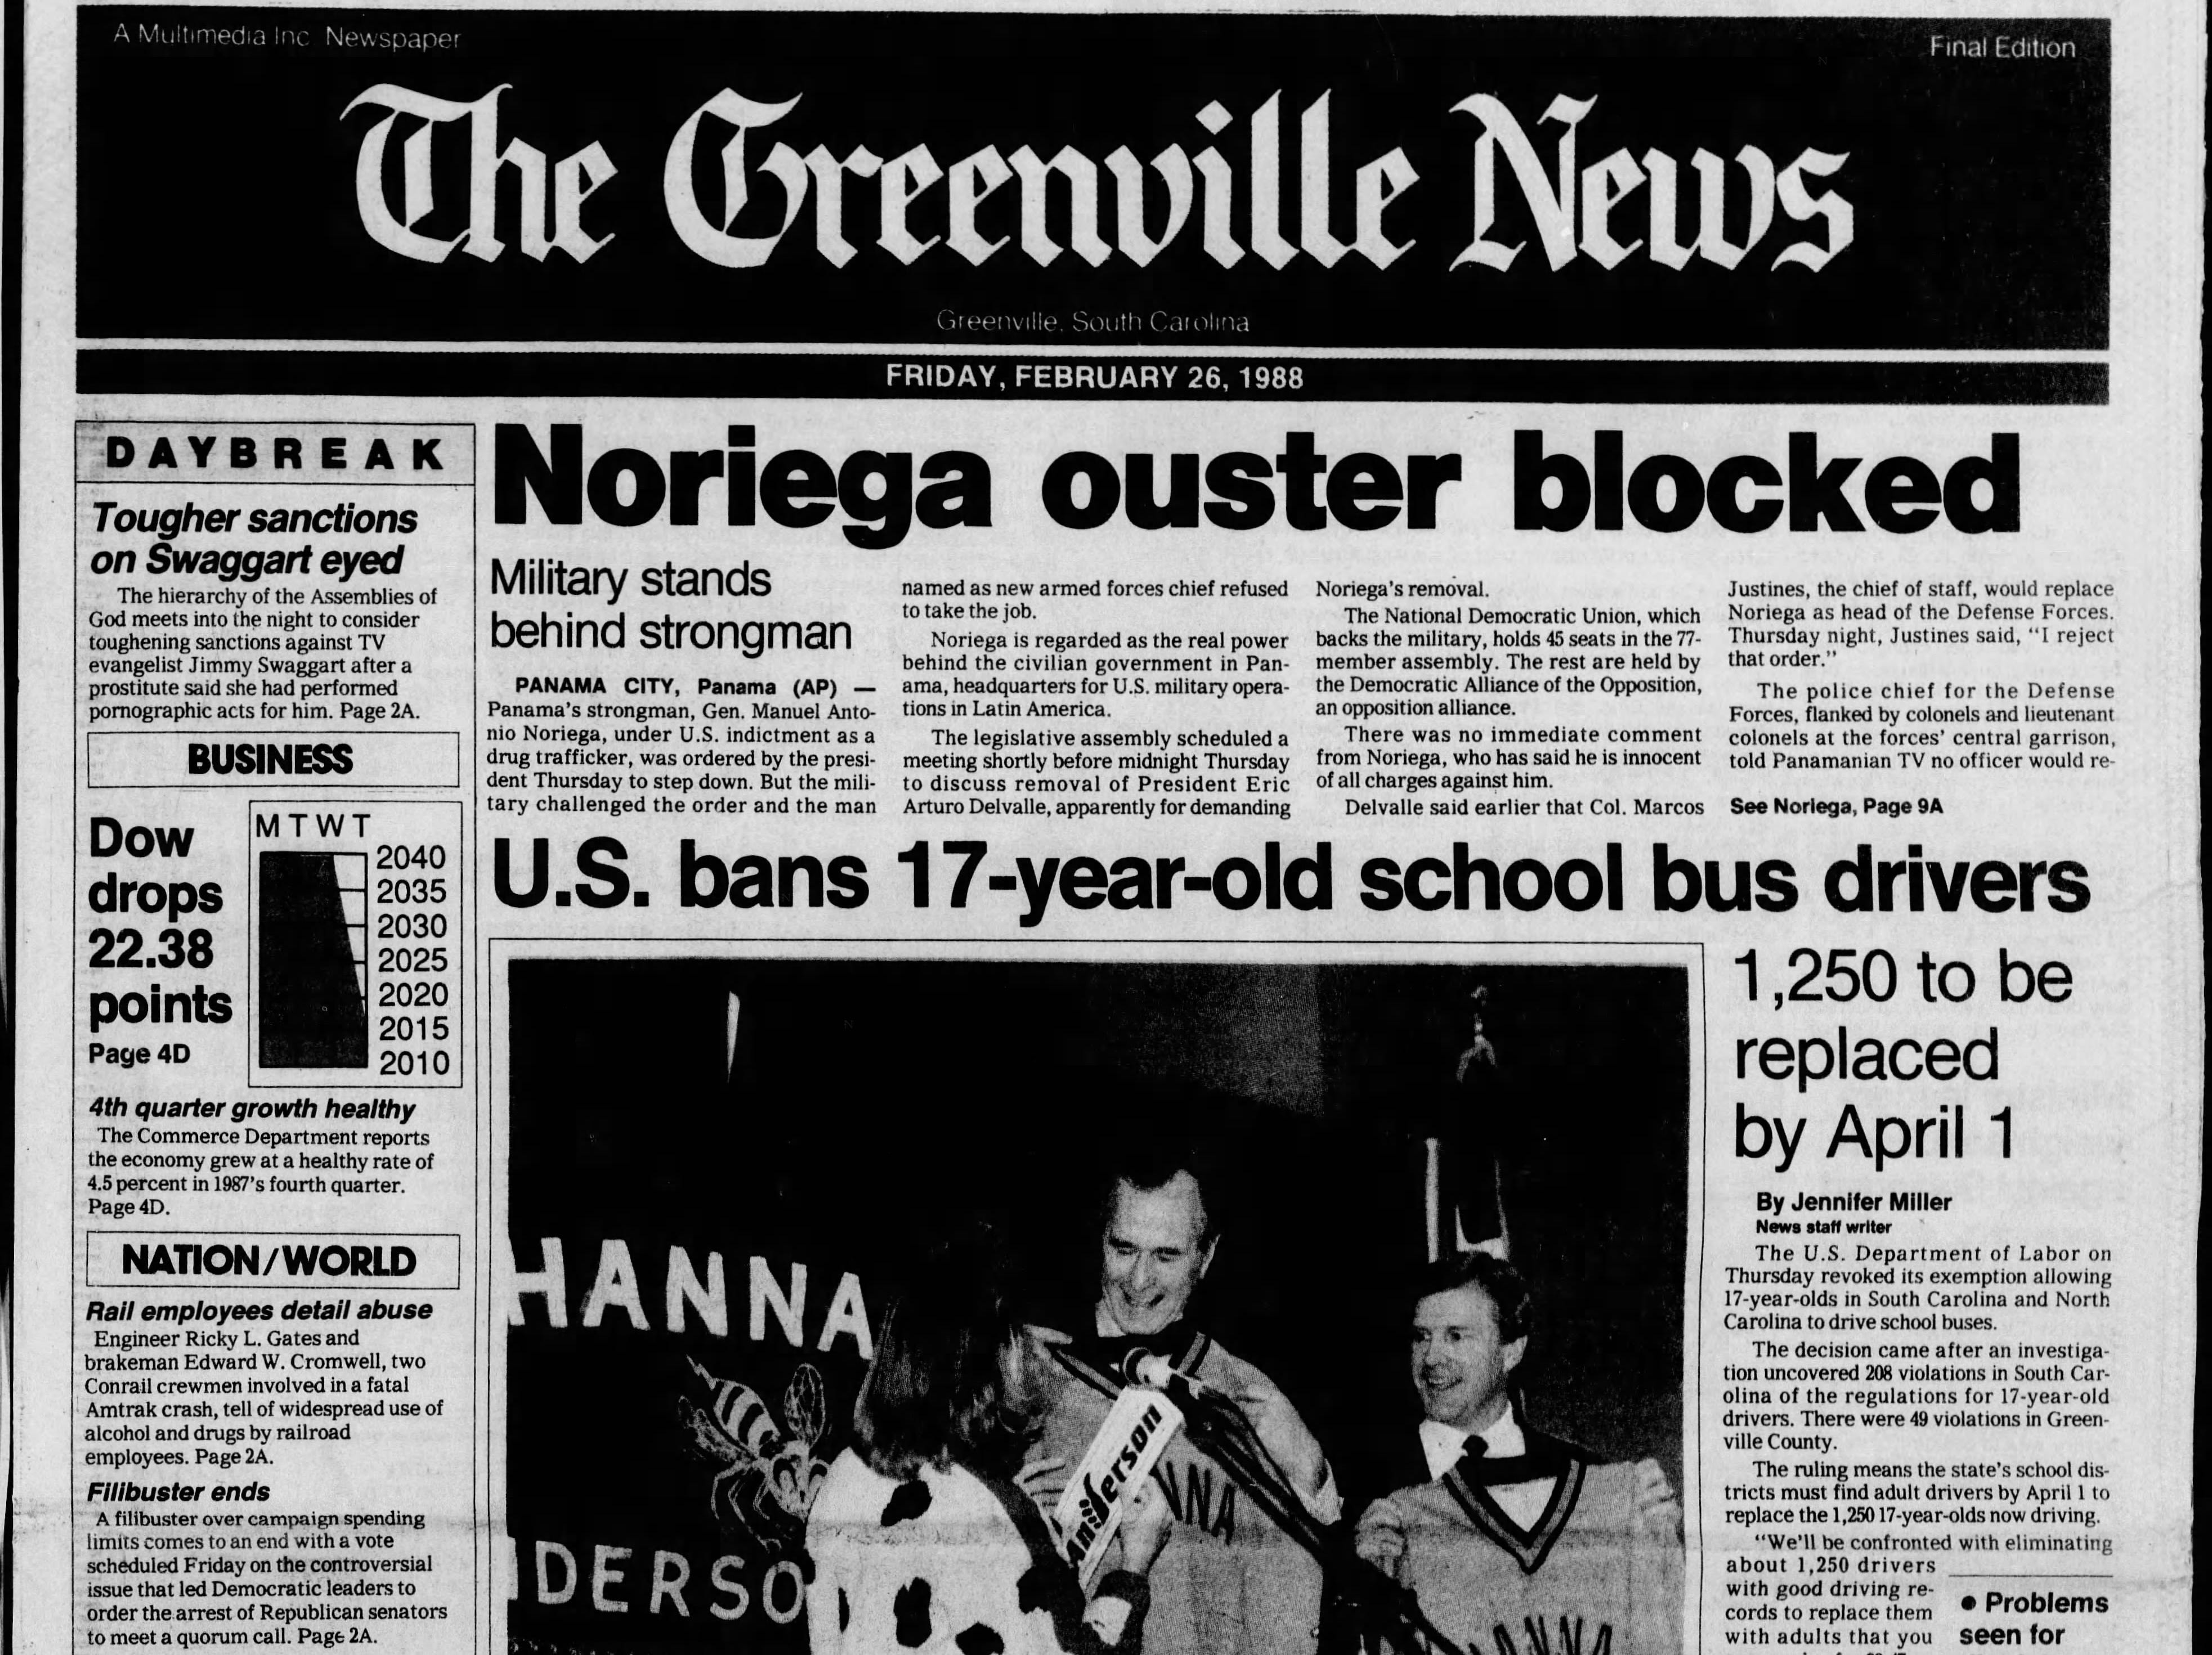 The Greenville News' coverage of former President George H.W. Bush's visits to South Carolina and the Upstate.